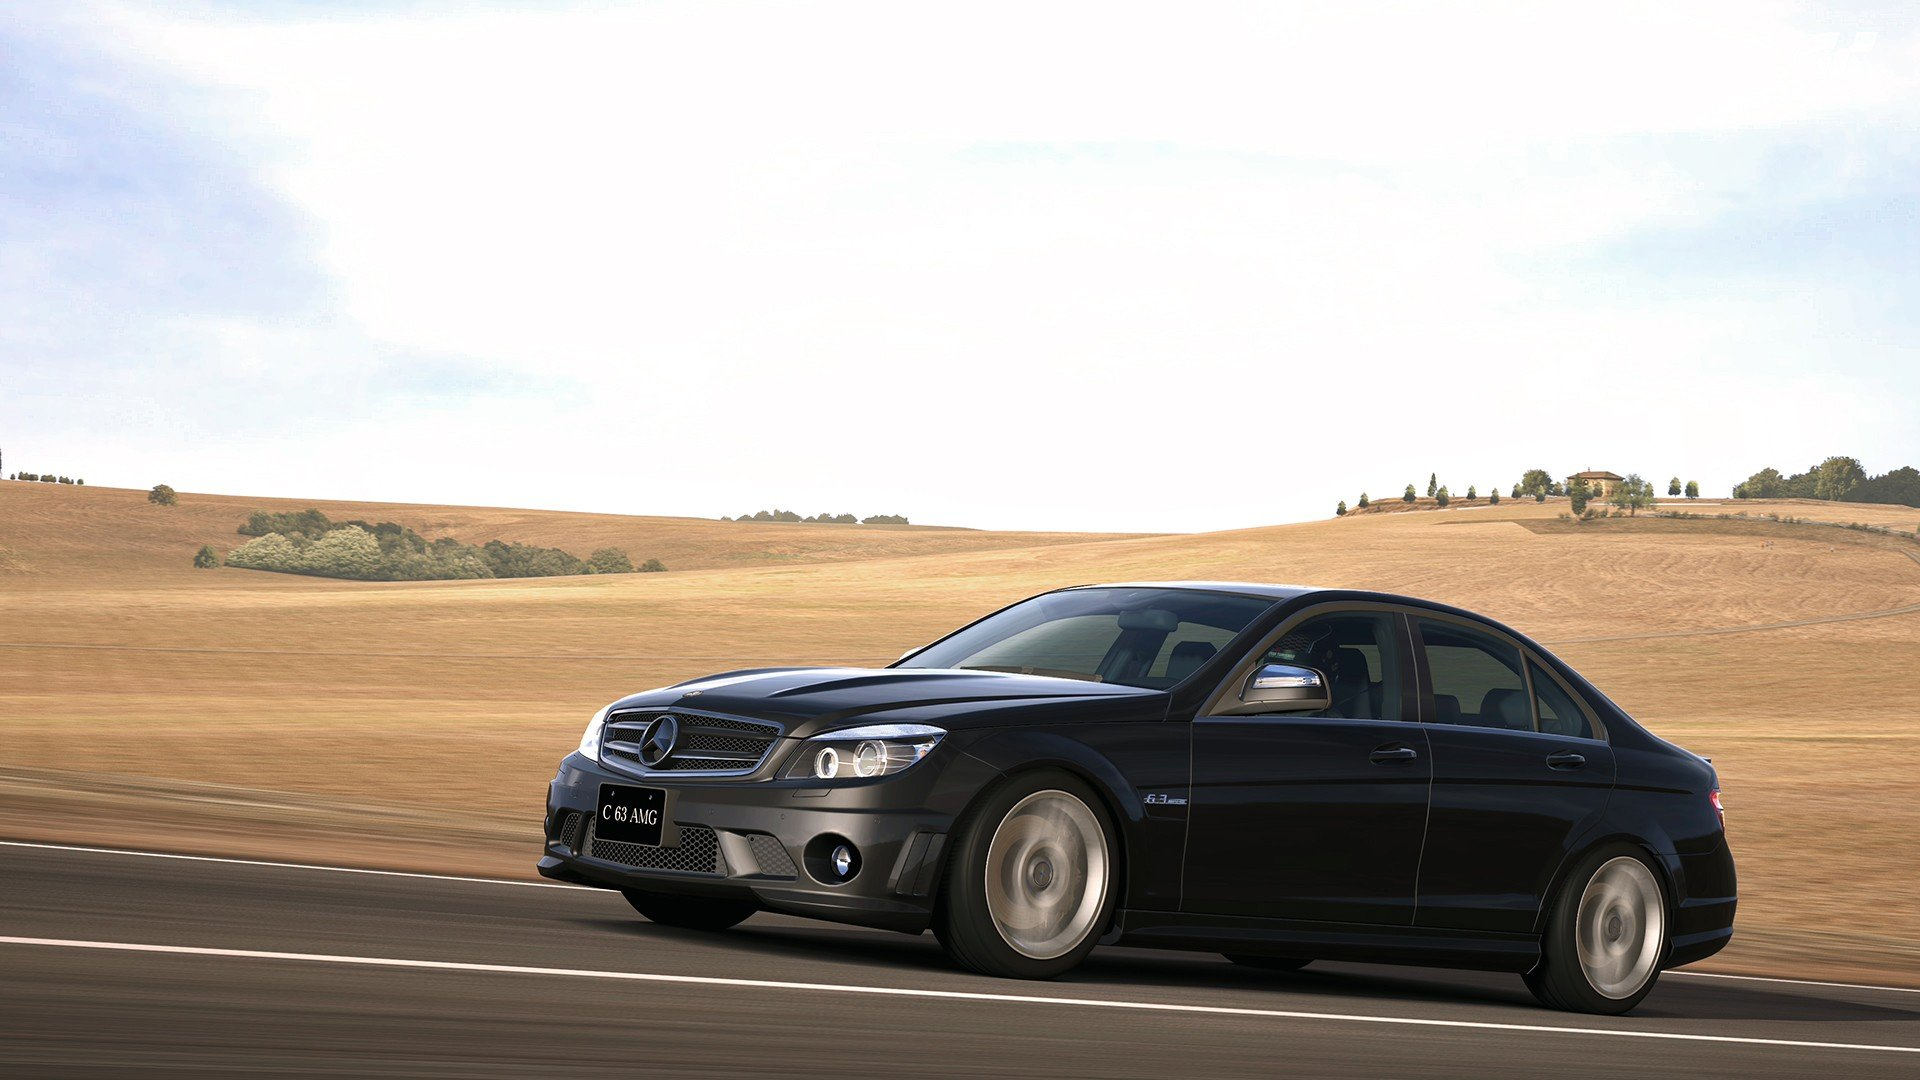 Video games cars gran turismo 5 playstation 3 mercedes for Mercedes benz games